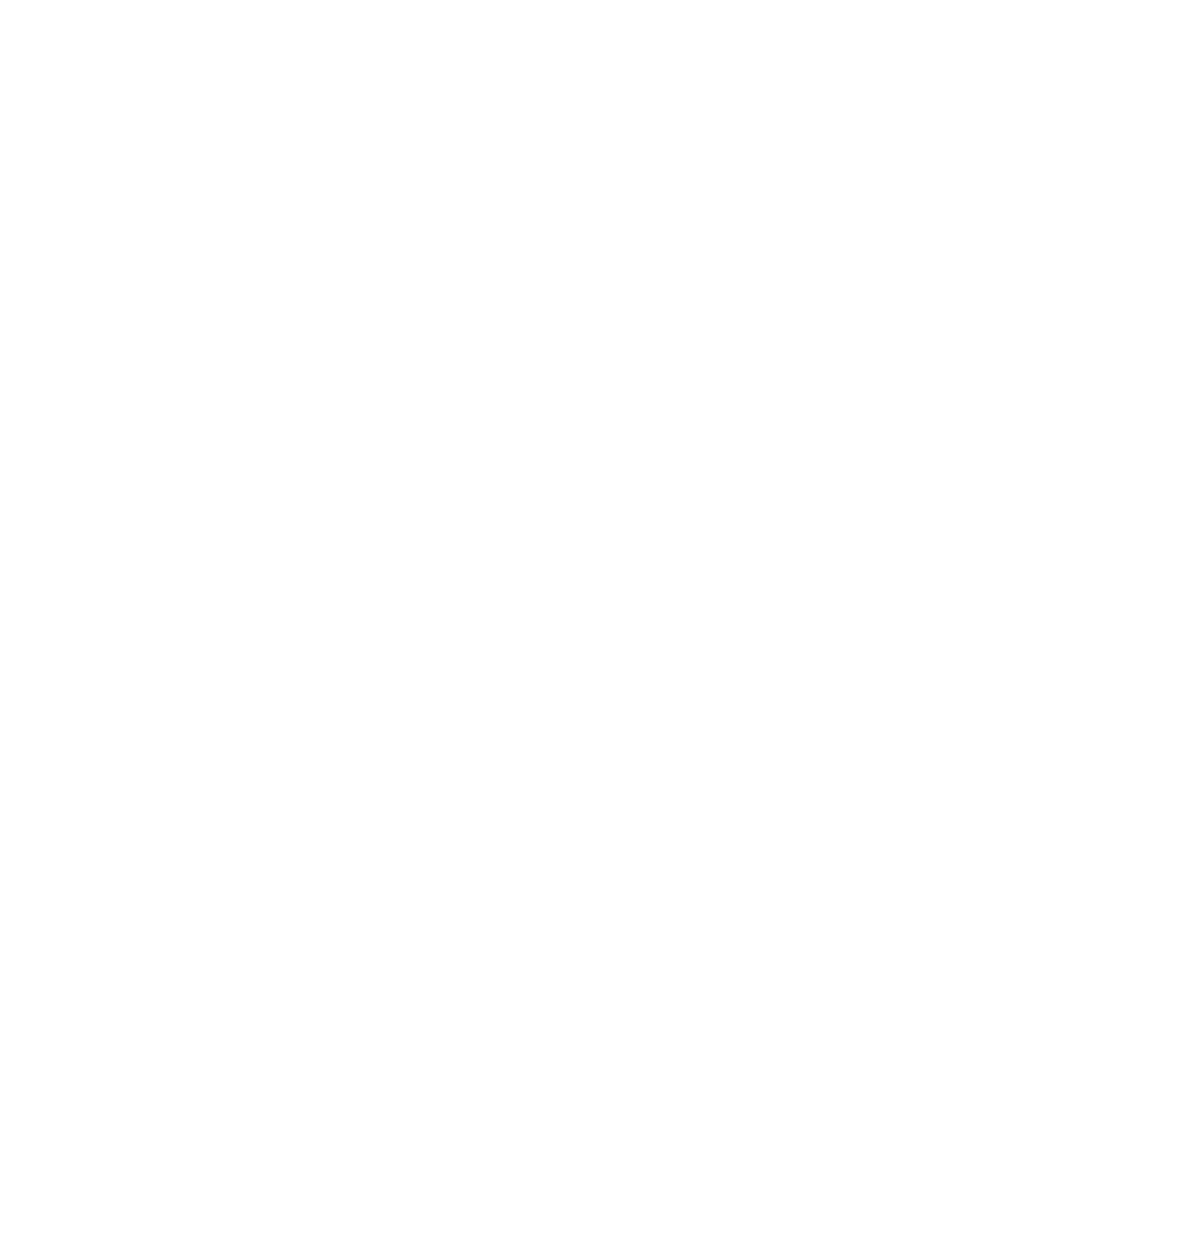 David James Limited logo